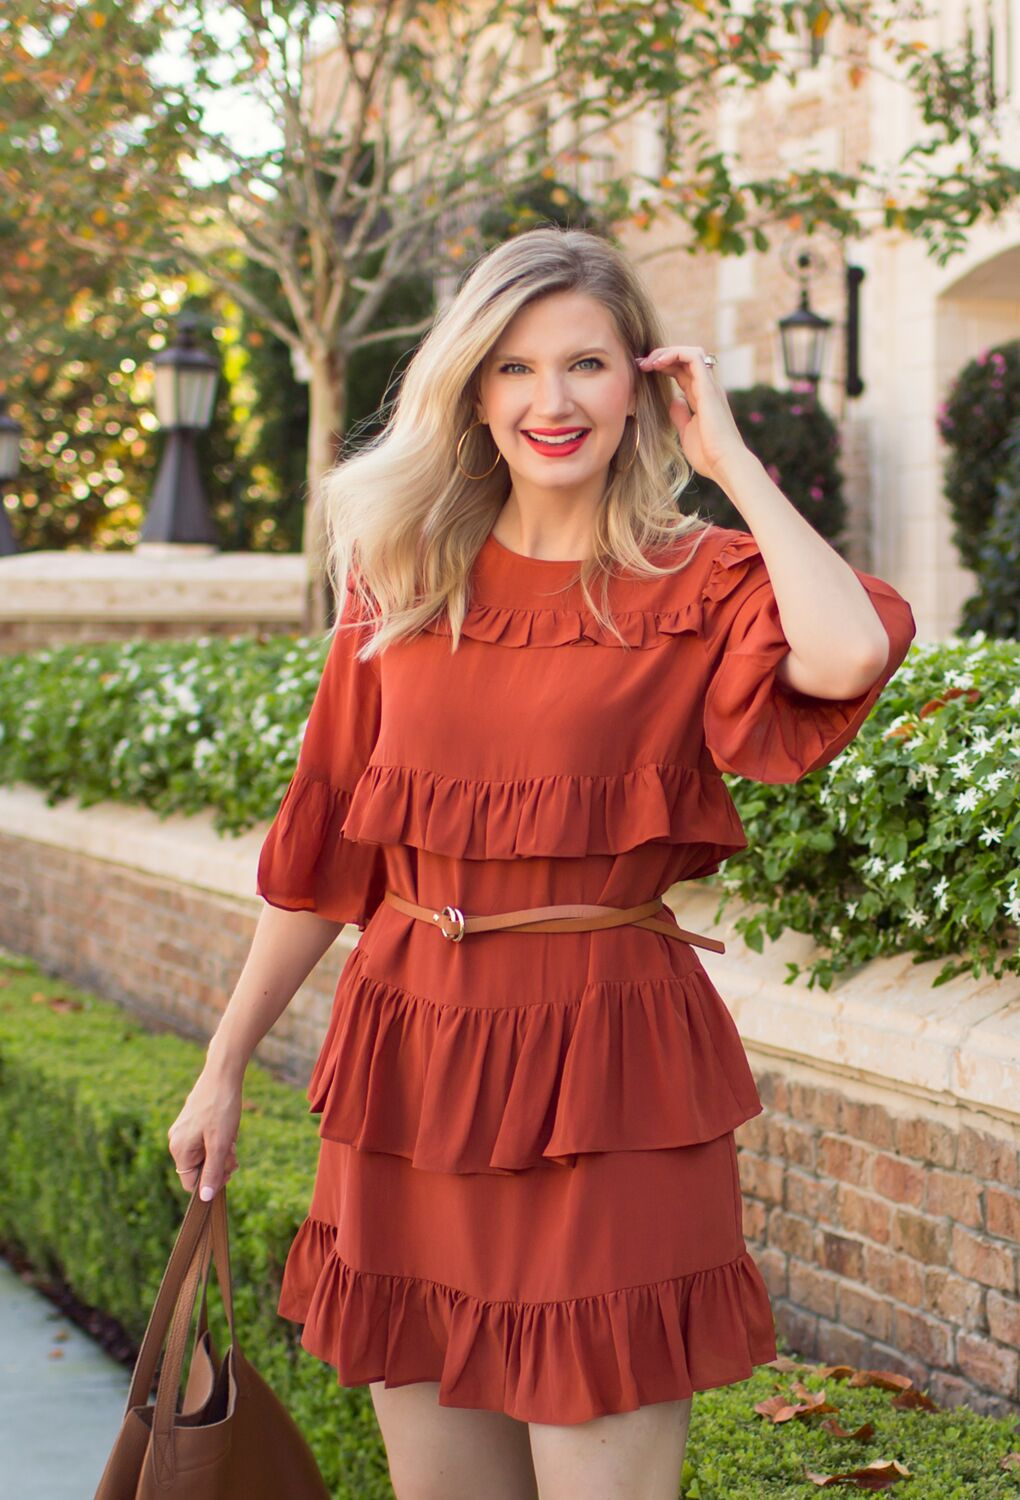 The Perfect Thanksgiving Look | www.ashleybrookedesigns.com